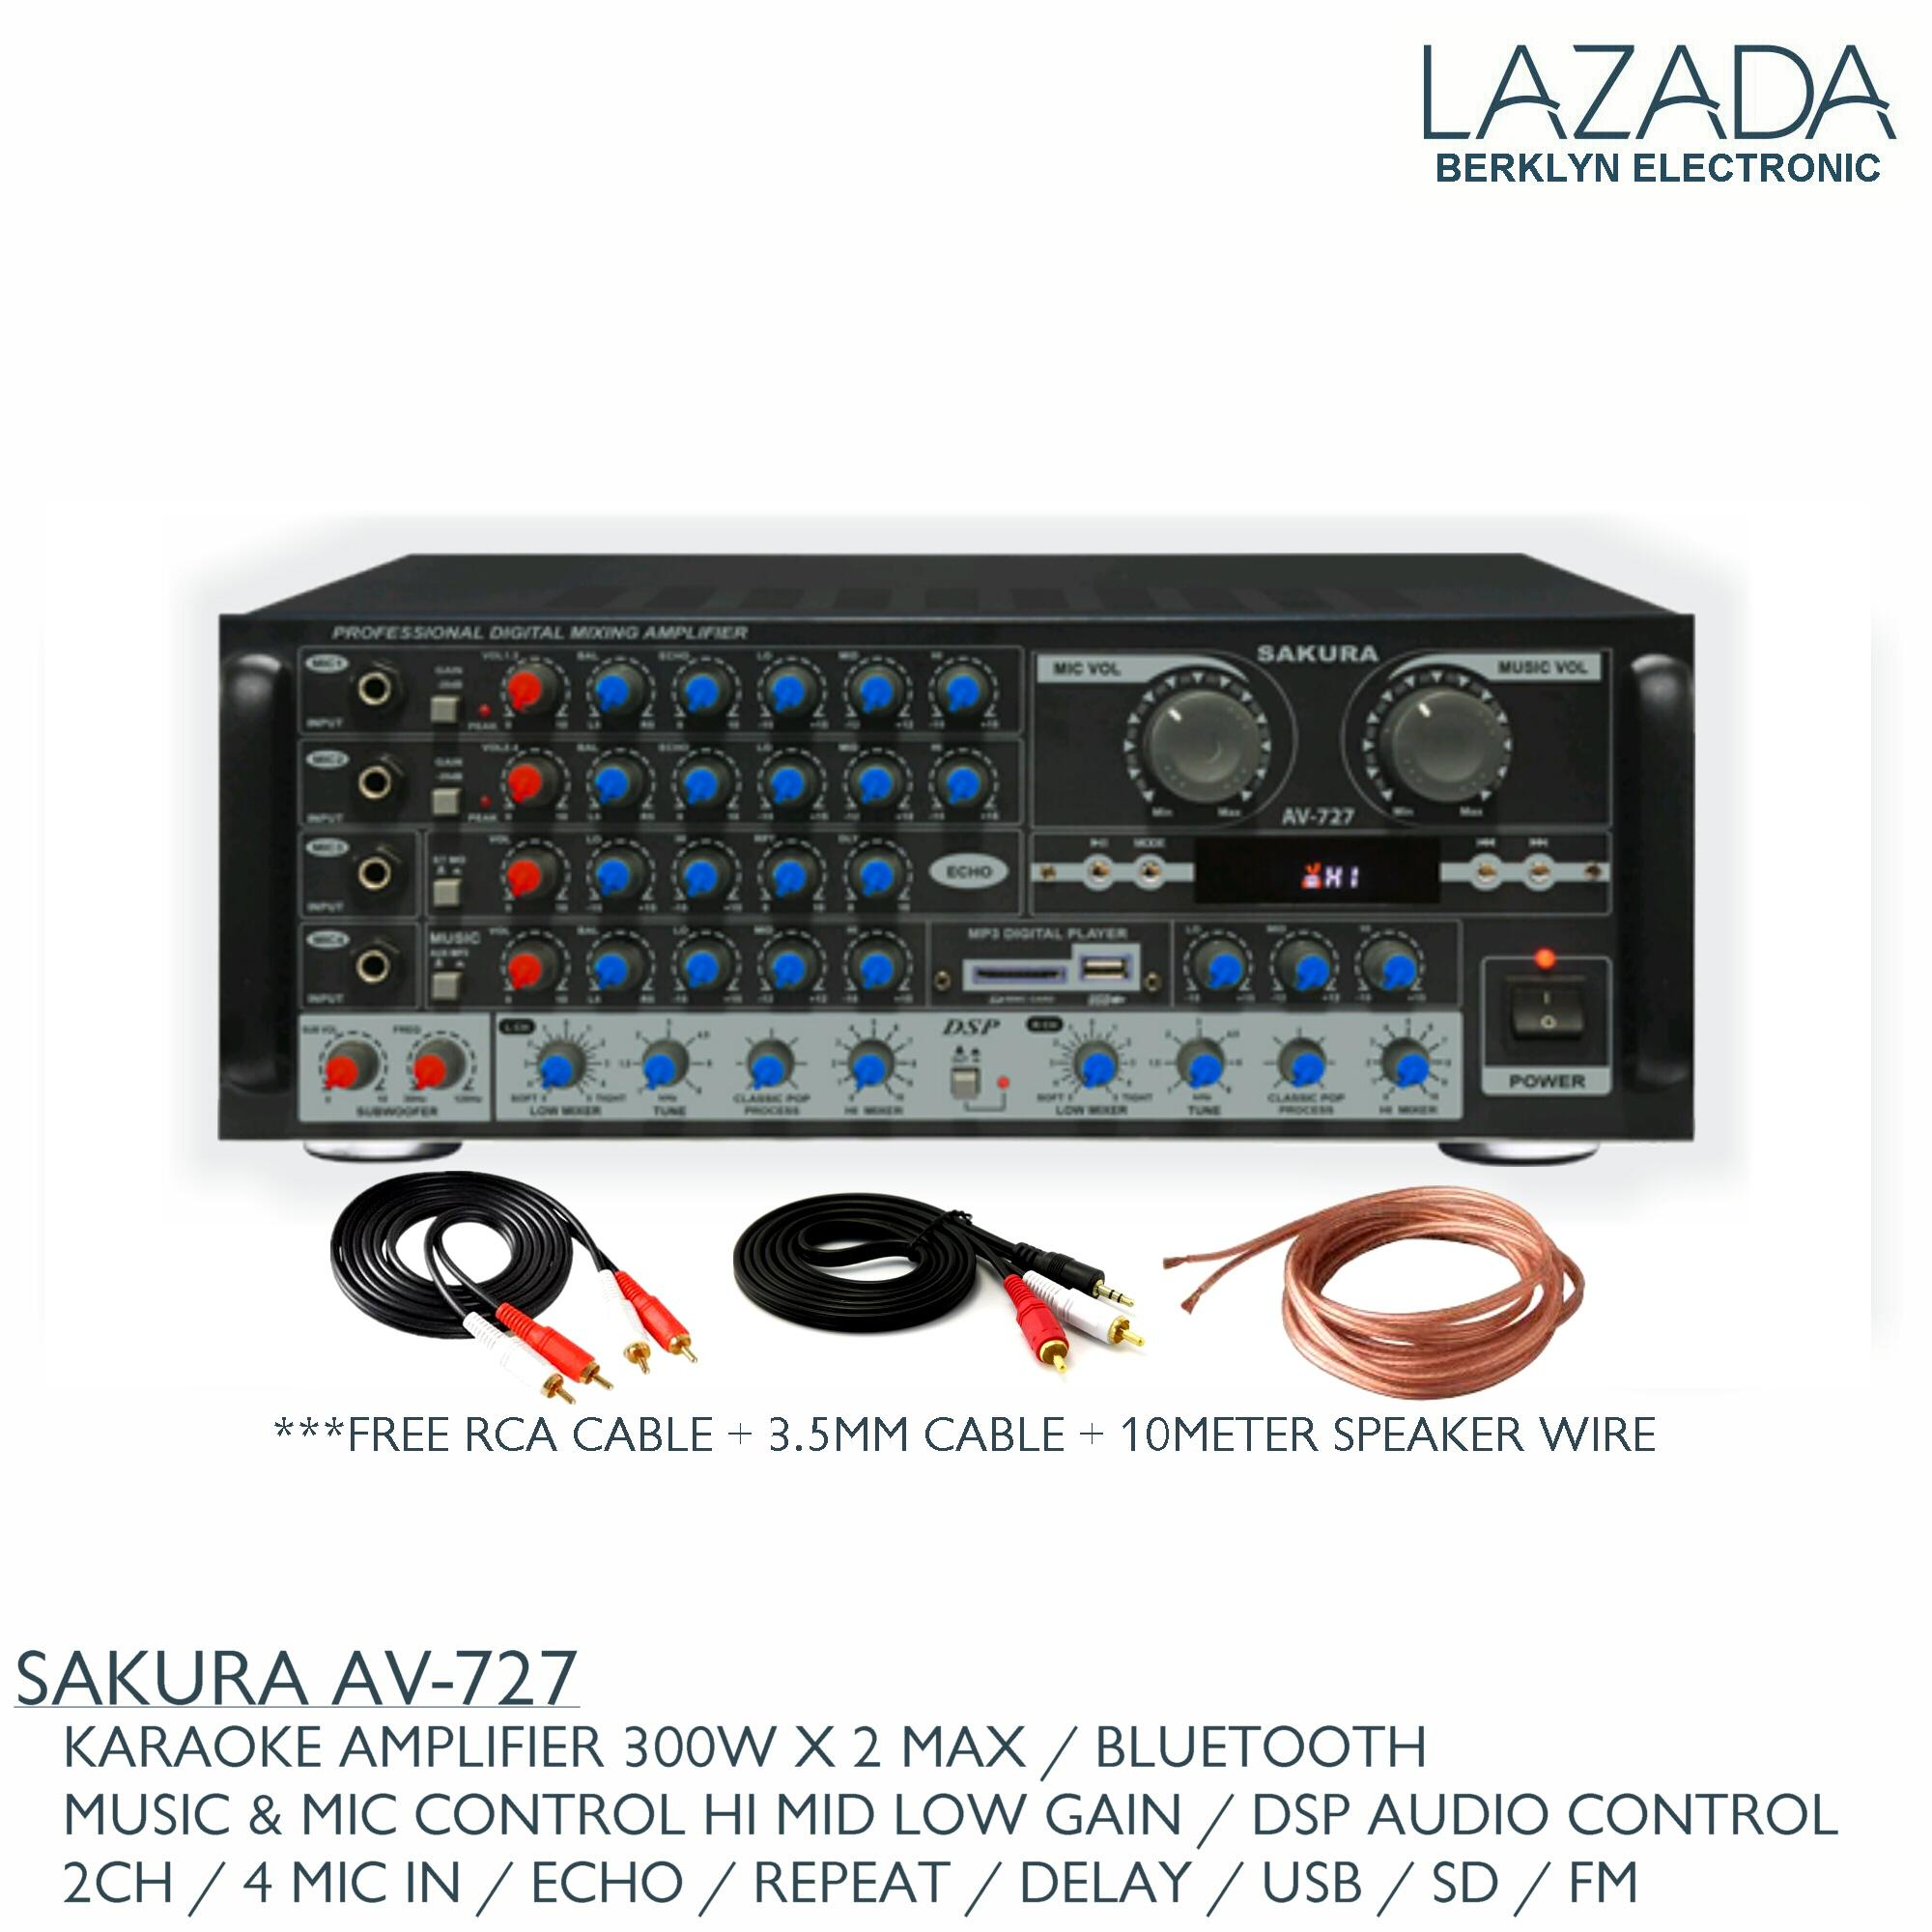 Sakura Philippines Price List Karaoke Mp3 Mixing Power Amp 10000w Circuit Diagram Electronic Design Av 727 Amplifier Usb Sd Bluetooth Fm 300w X 2